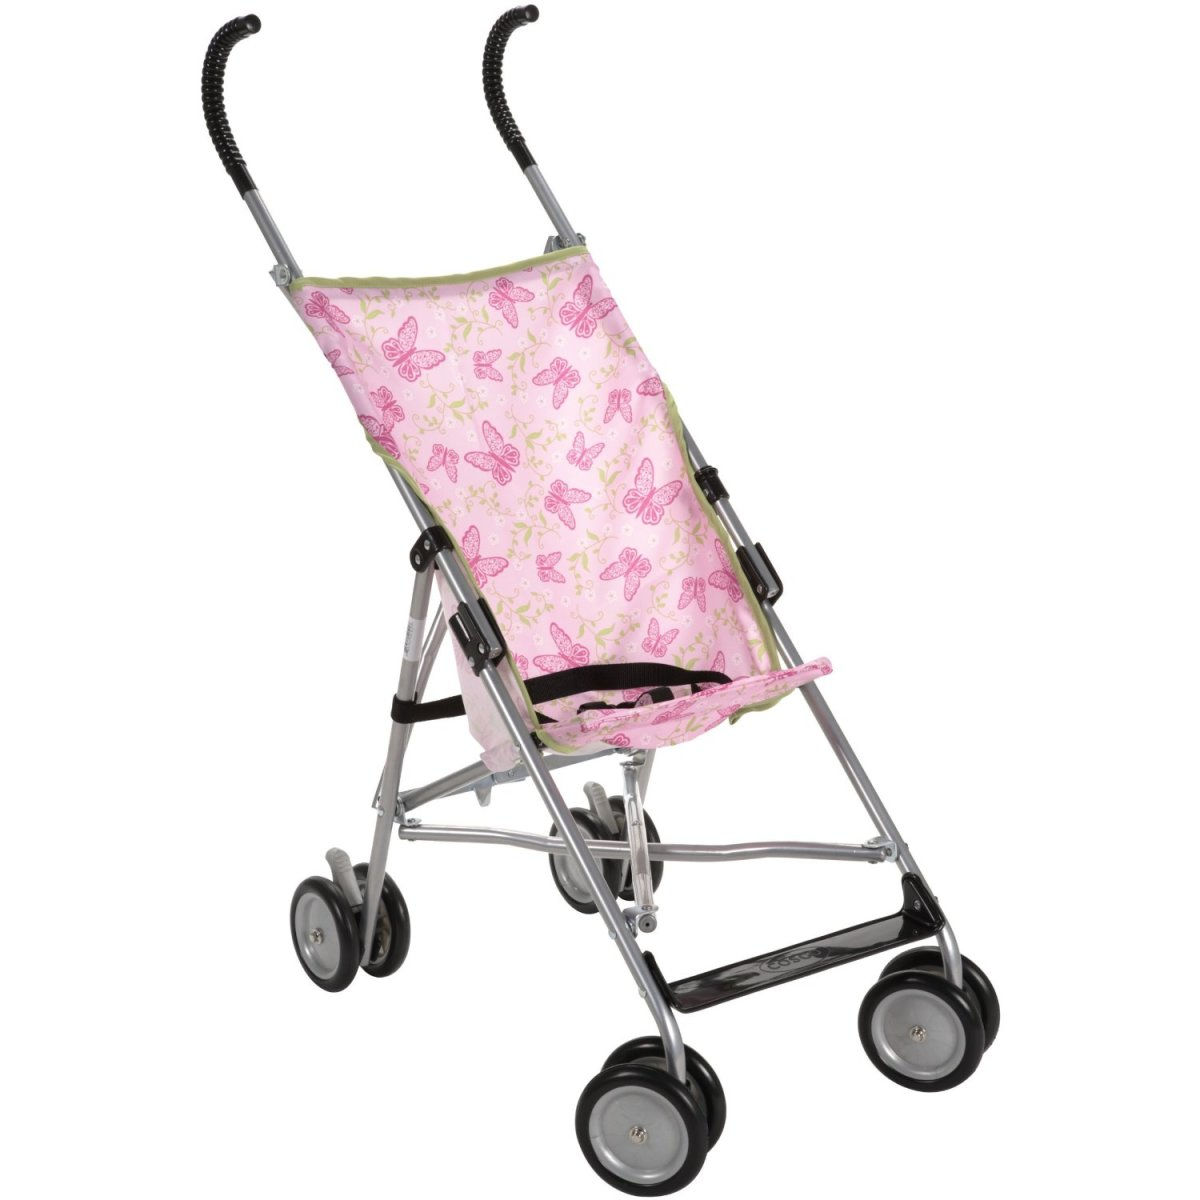 Cosco Stroller And Umbrella Stroller, The Best Lightweight Baby Strollers